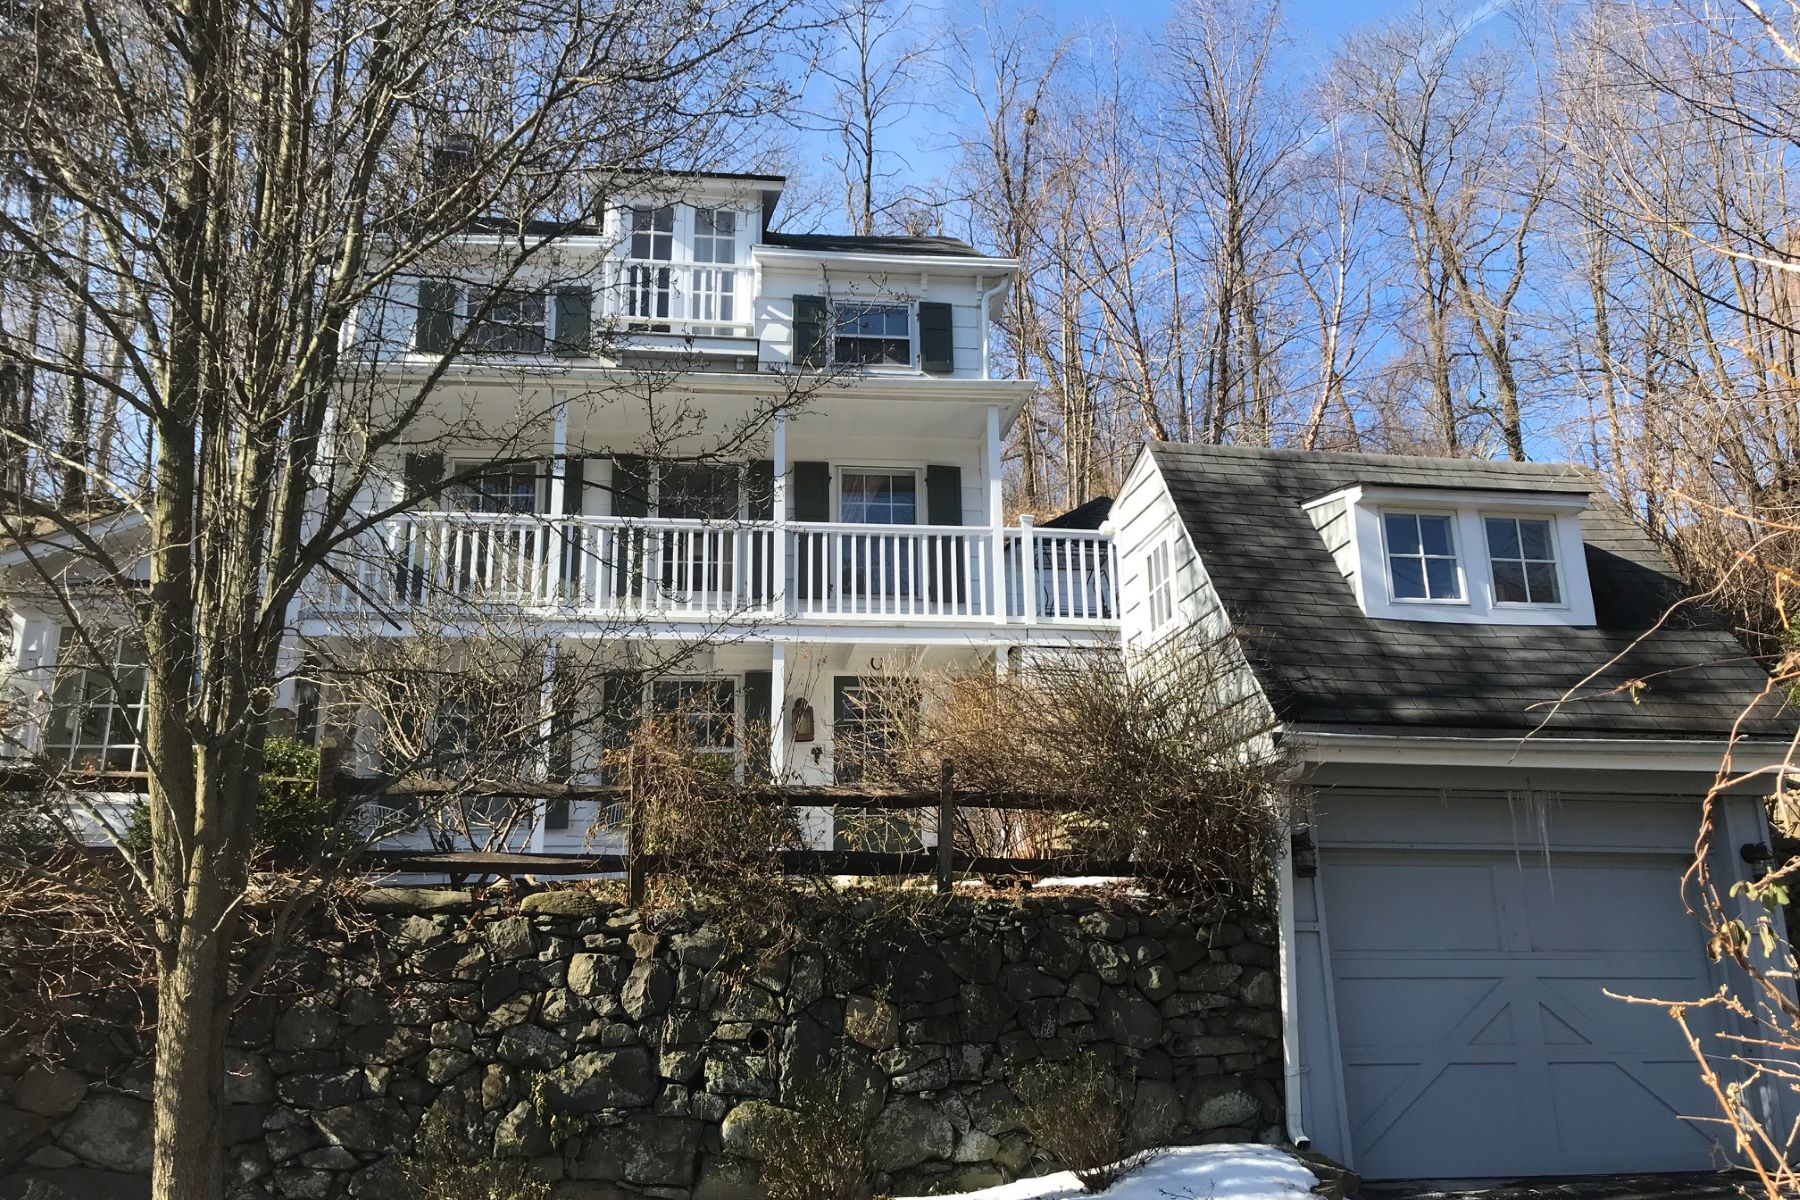 Single Family Homes for Sale at The Henry Dobbs House 63 Washington Spring Road Palisades, New York 10964 United States